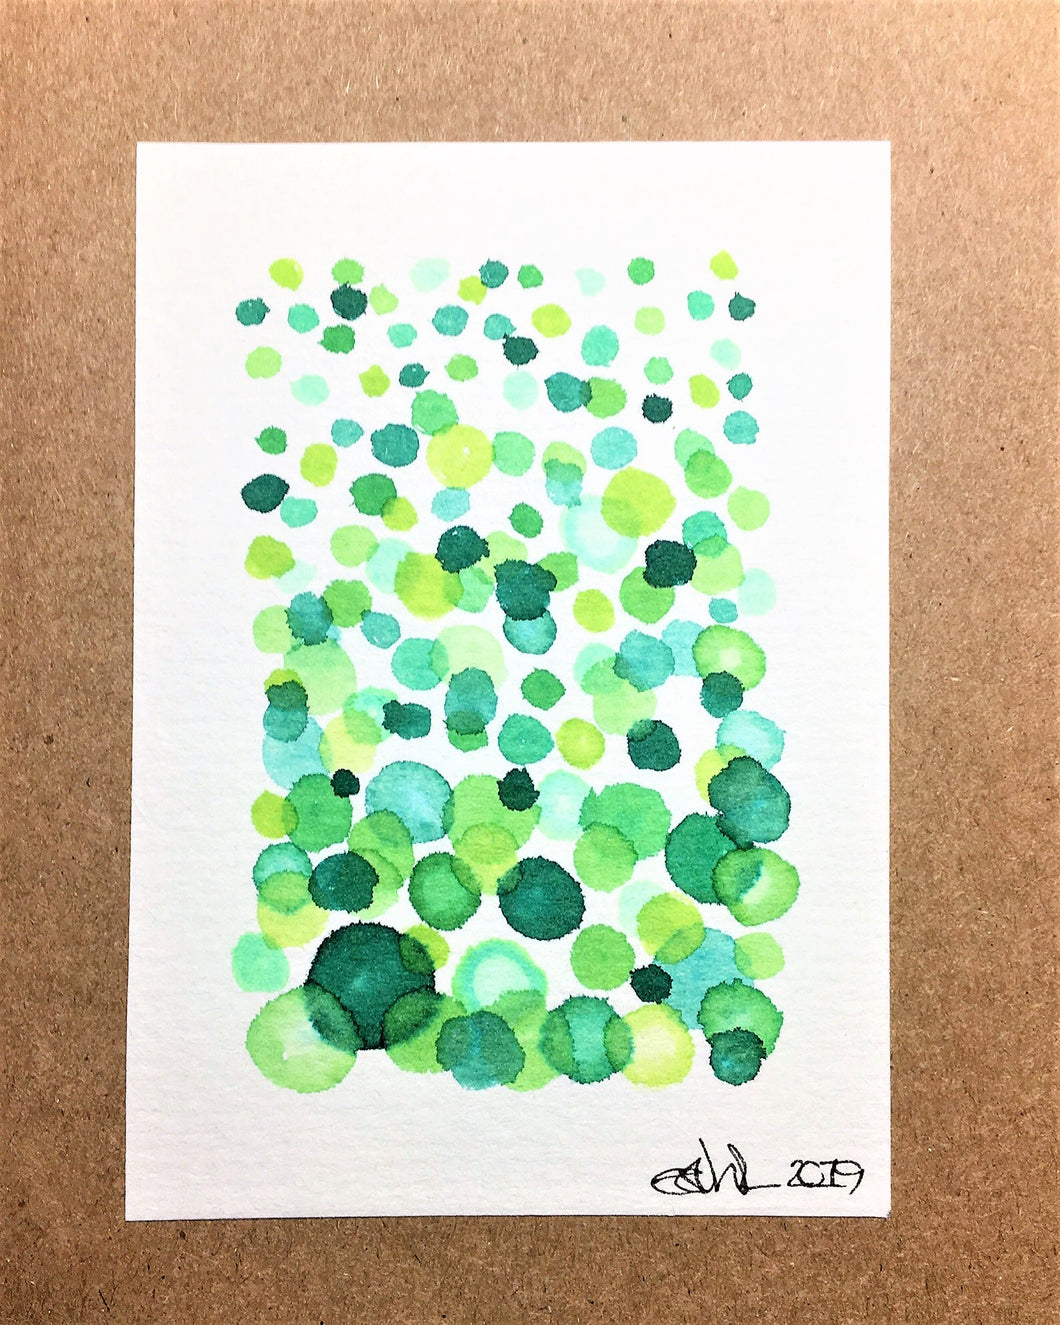 Hand-painted Greeting Card - Green Bubble Design - eDgE dEsiGn London